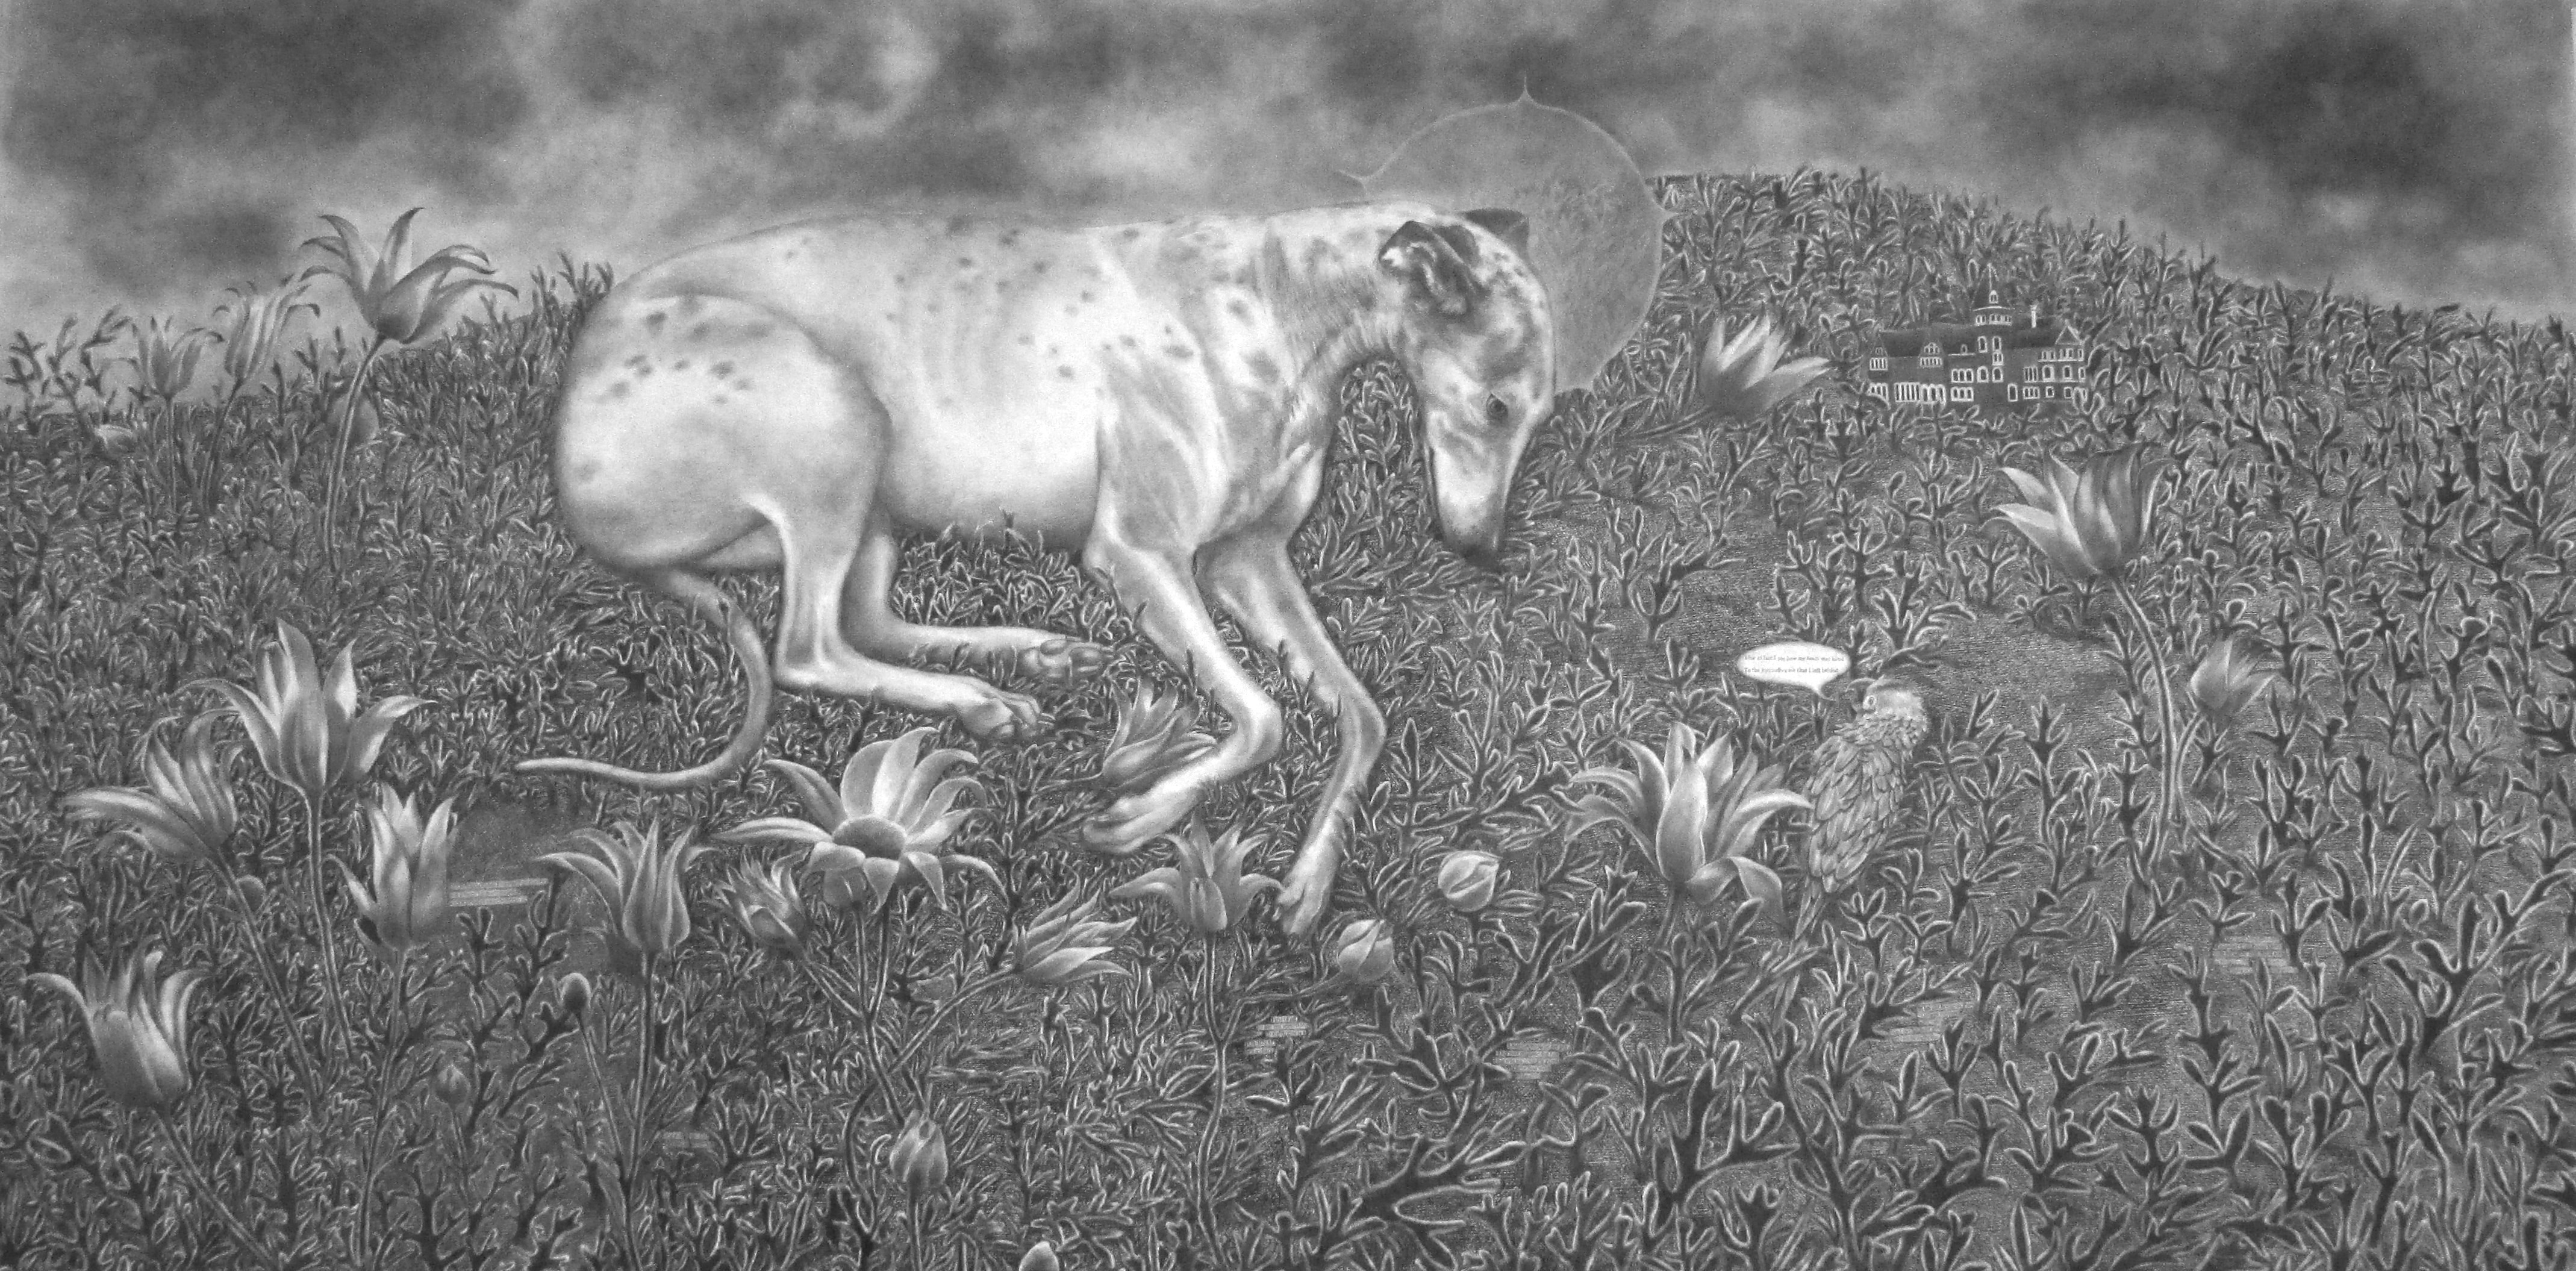 2014-Respite-for-Saint-Brigid-of-Kildare-Literacy-Aide-New-Work-of-Dogs-series-graphite-and-charcoal-on-gessoed-paper-2014